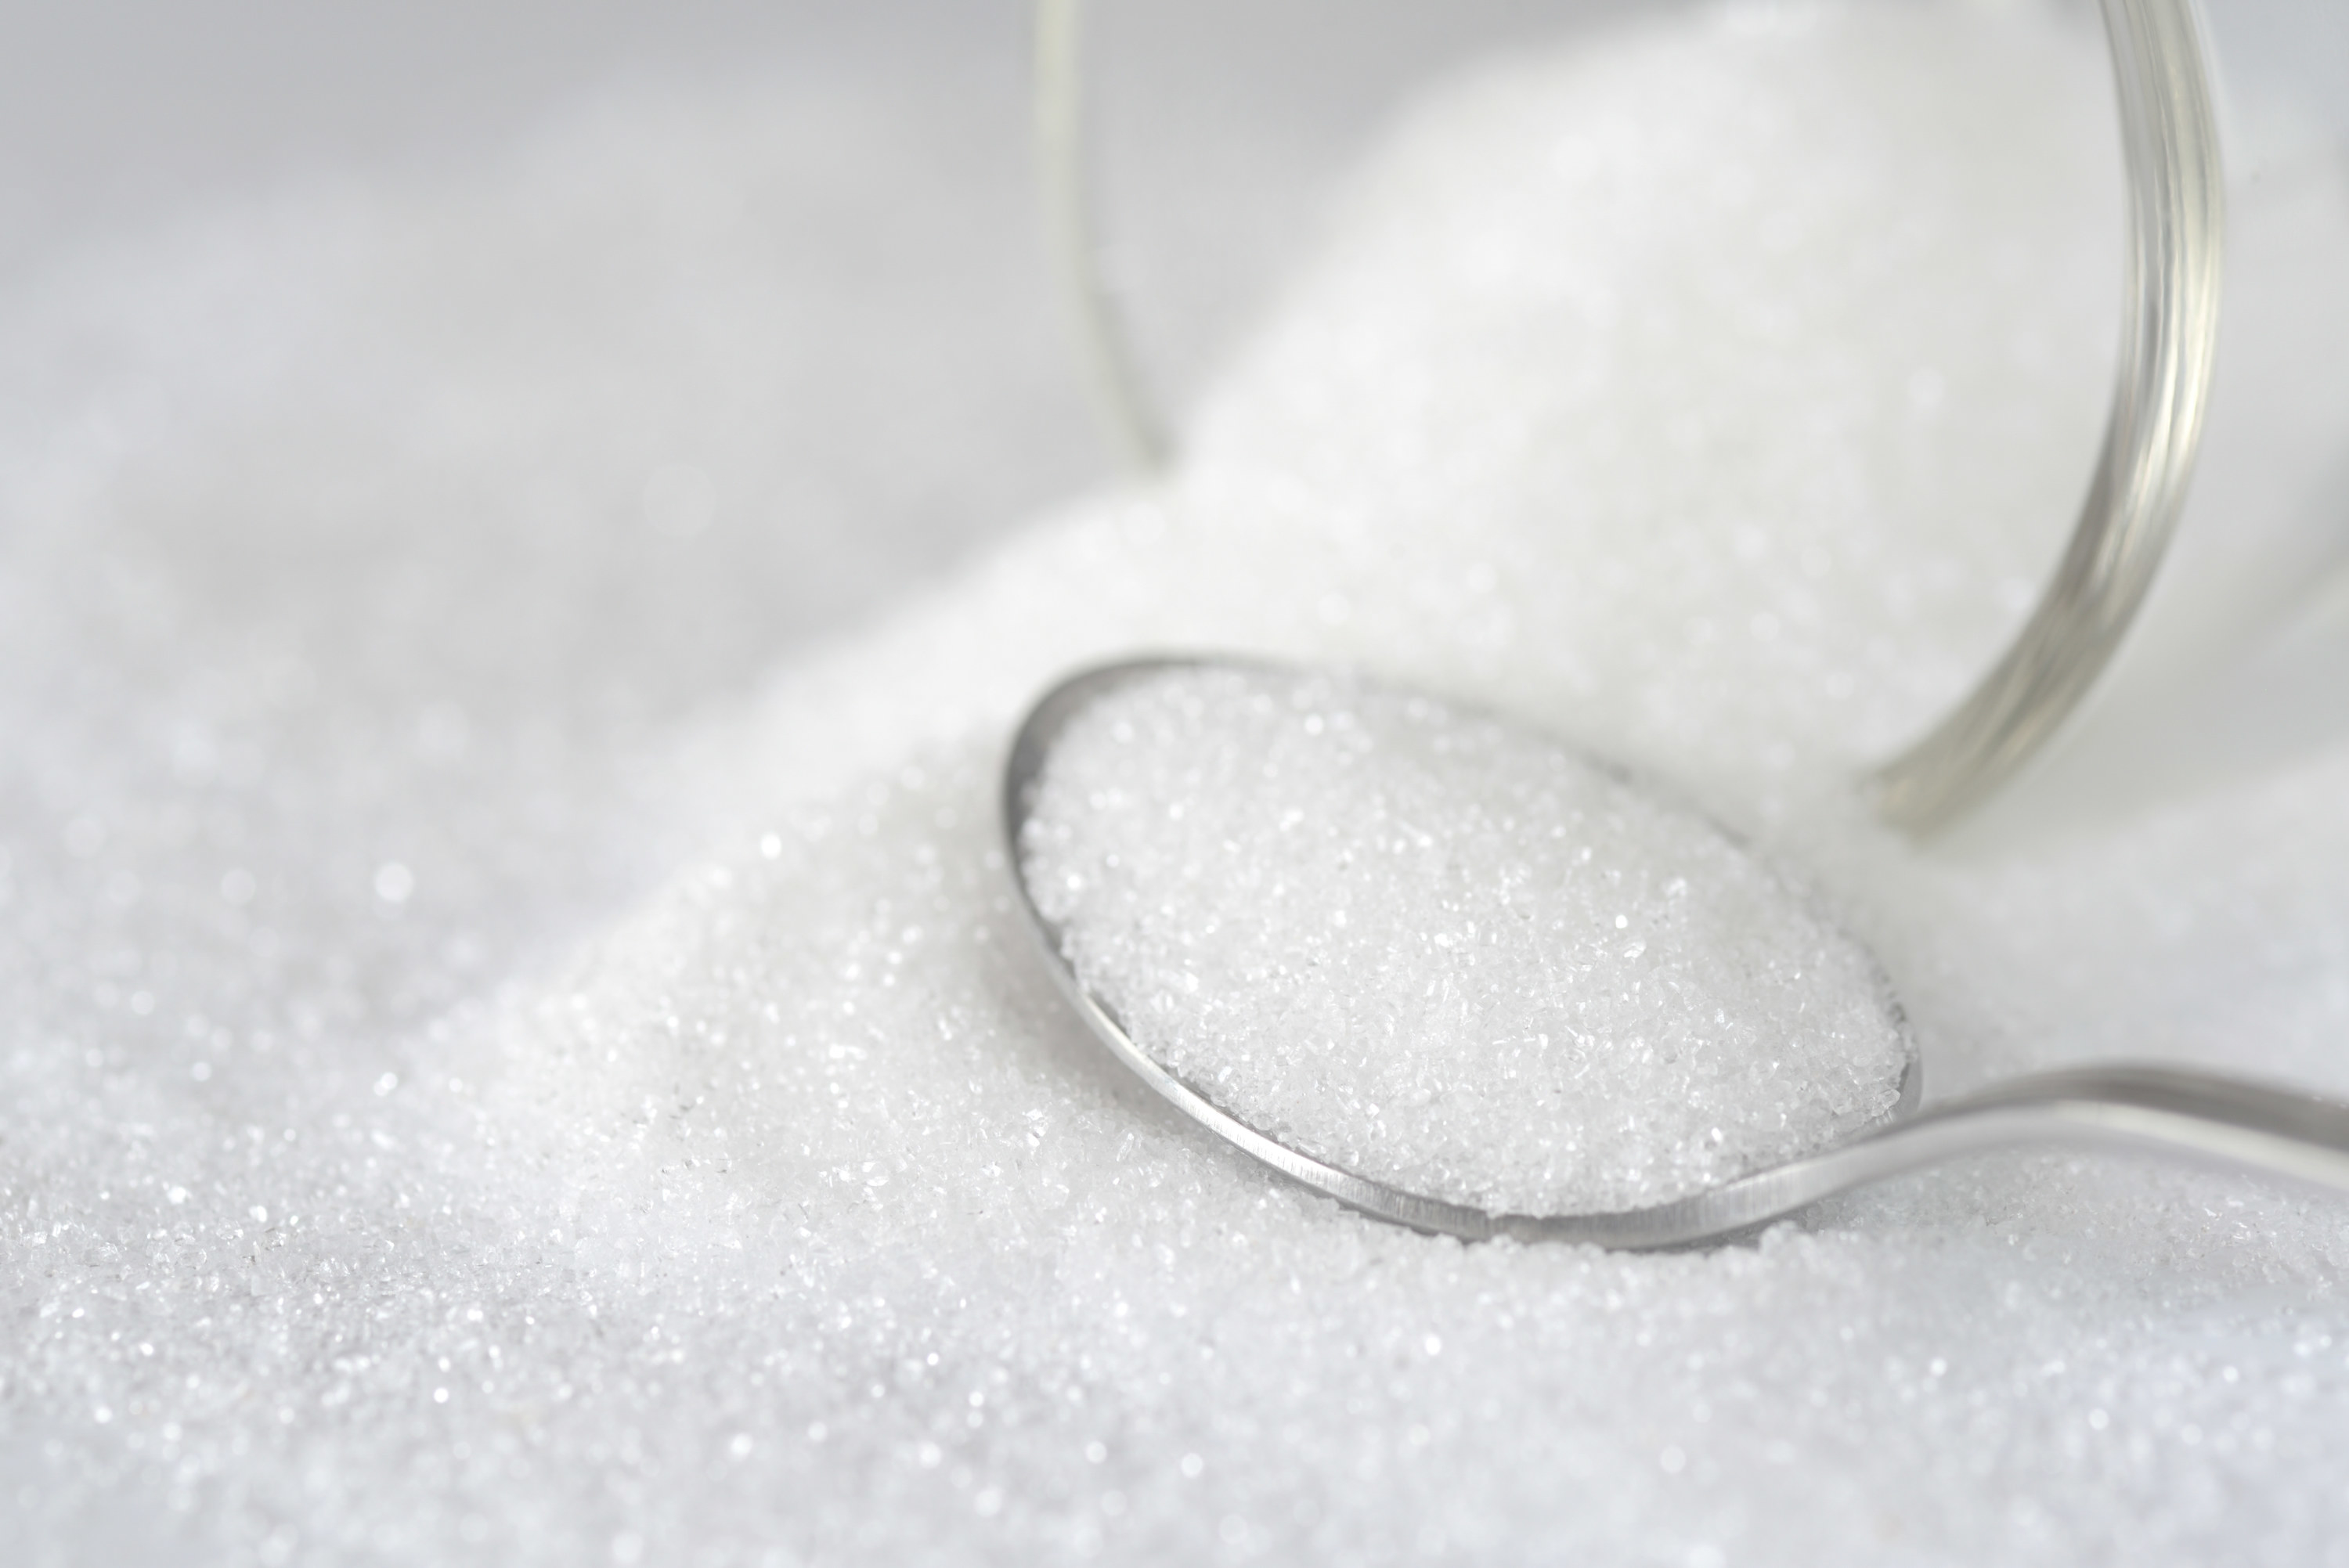 Spilled white sugar in a spoon